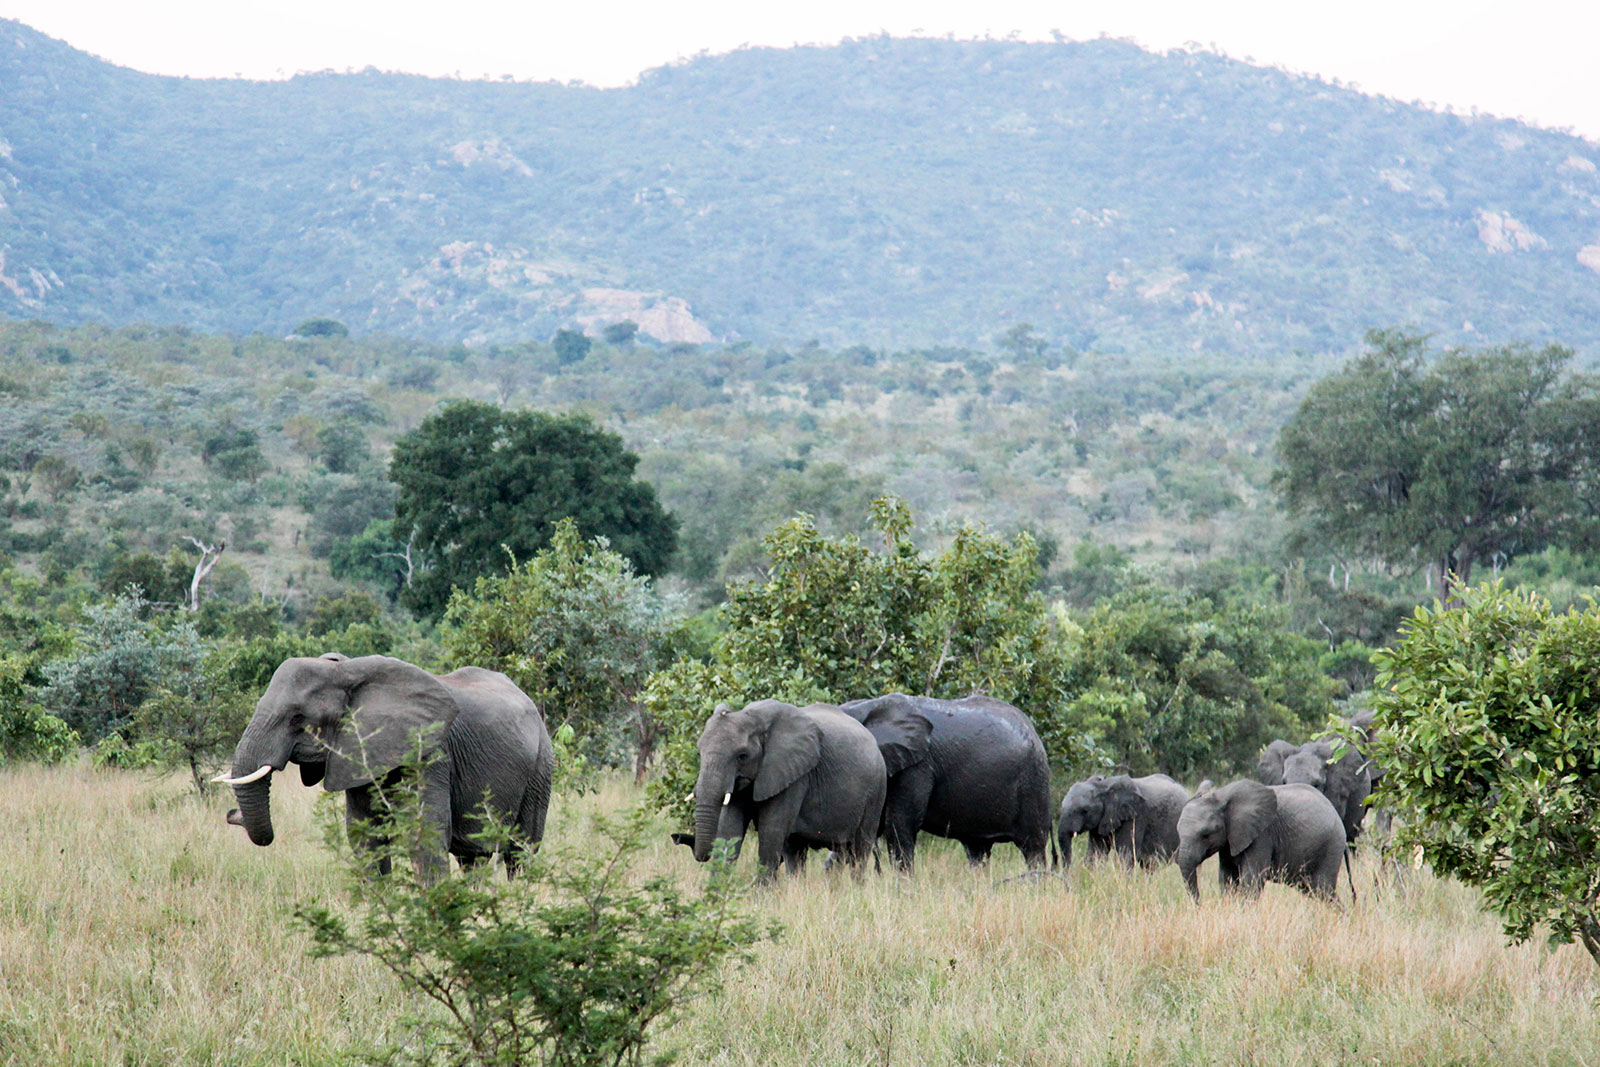 elephants in Kruger National Park, South Africa